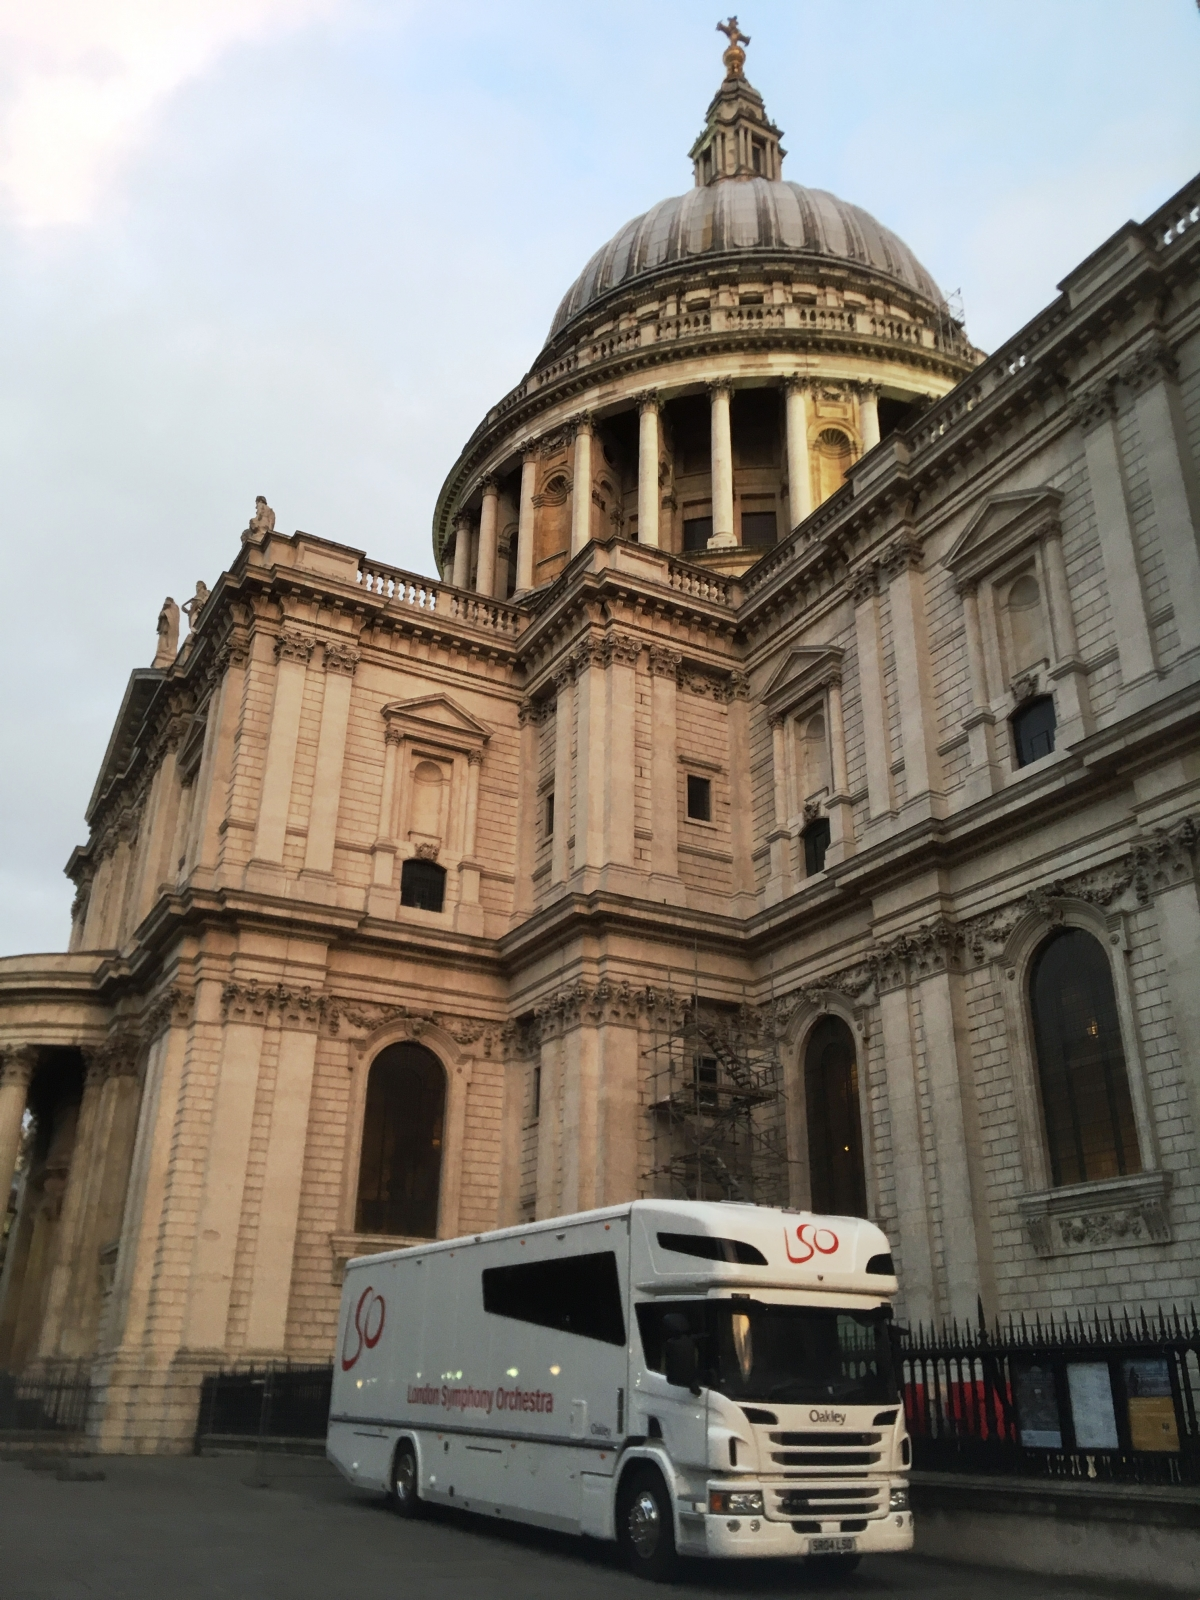 Lord Mayor's Gala Concert with LSO, St. Paul's Cathedral